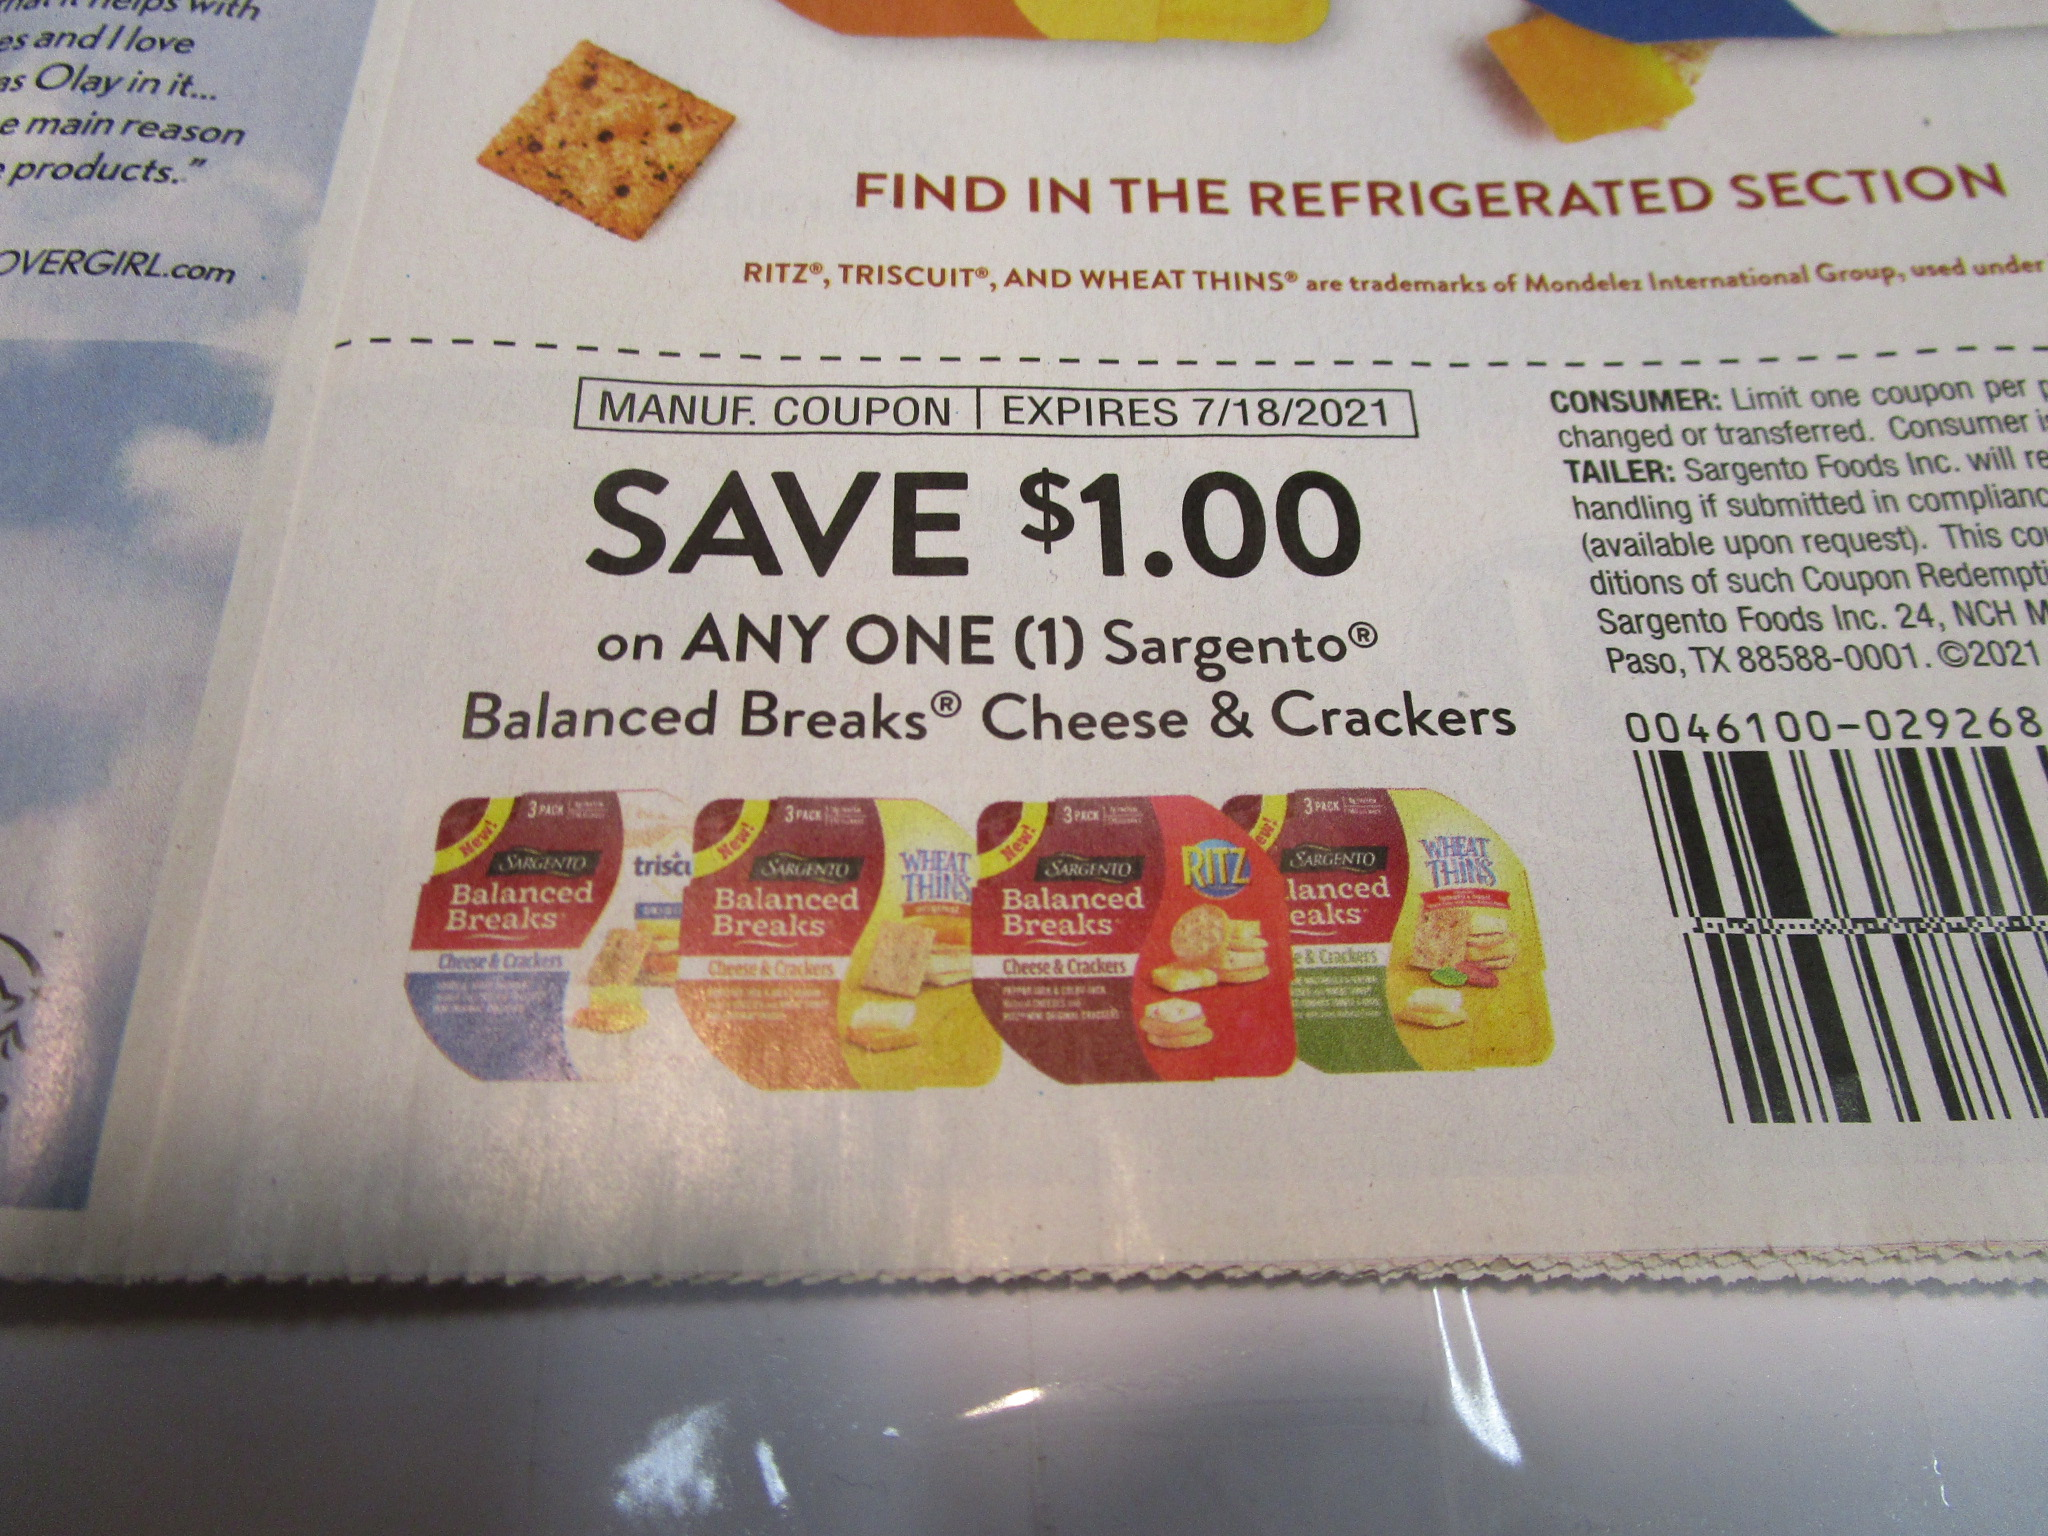 $1/1 Sargento Balanced Breaks Cheese & Crackers 7/18/2021